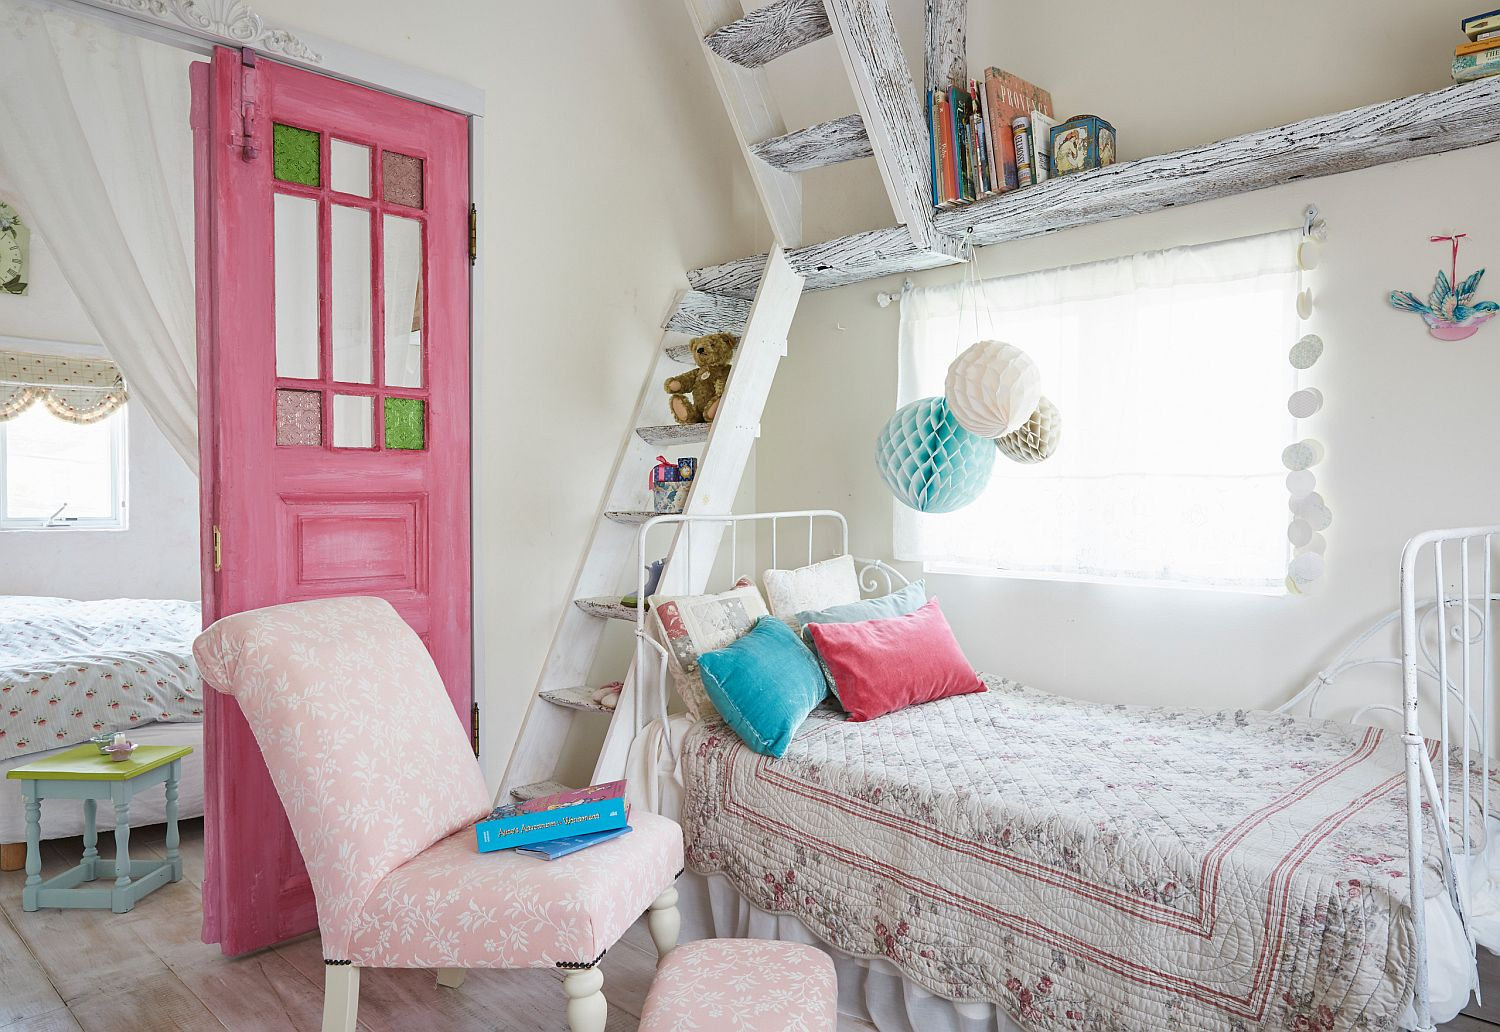 Small and stylish white bedroom with shabby chic style feels relaxing